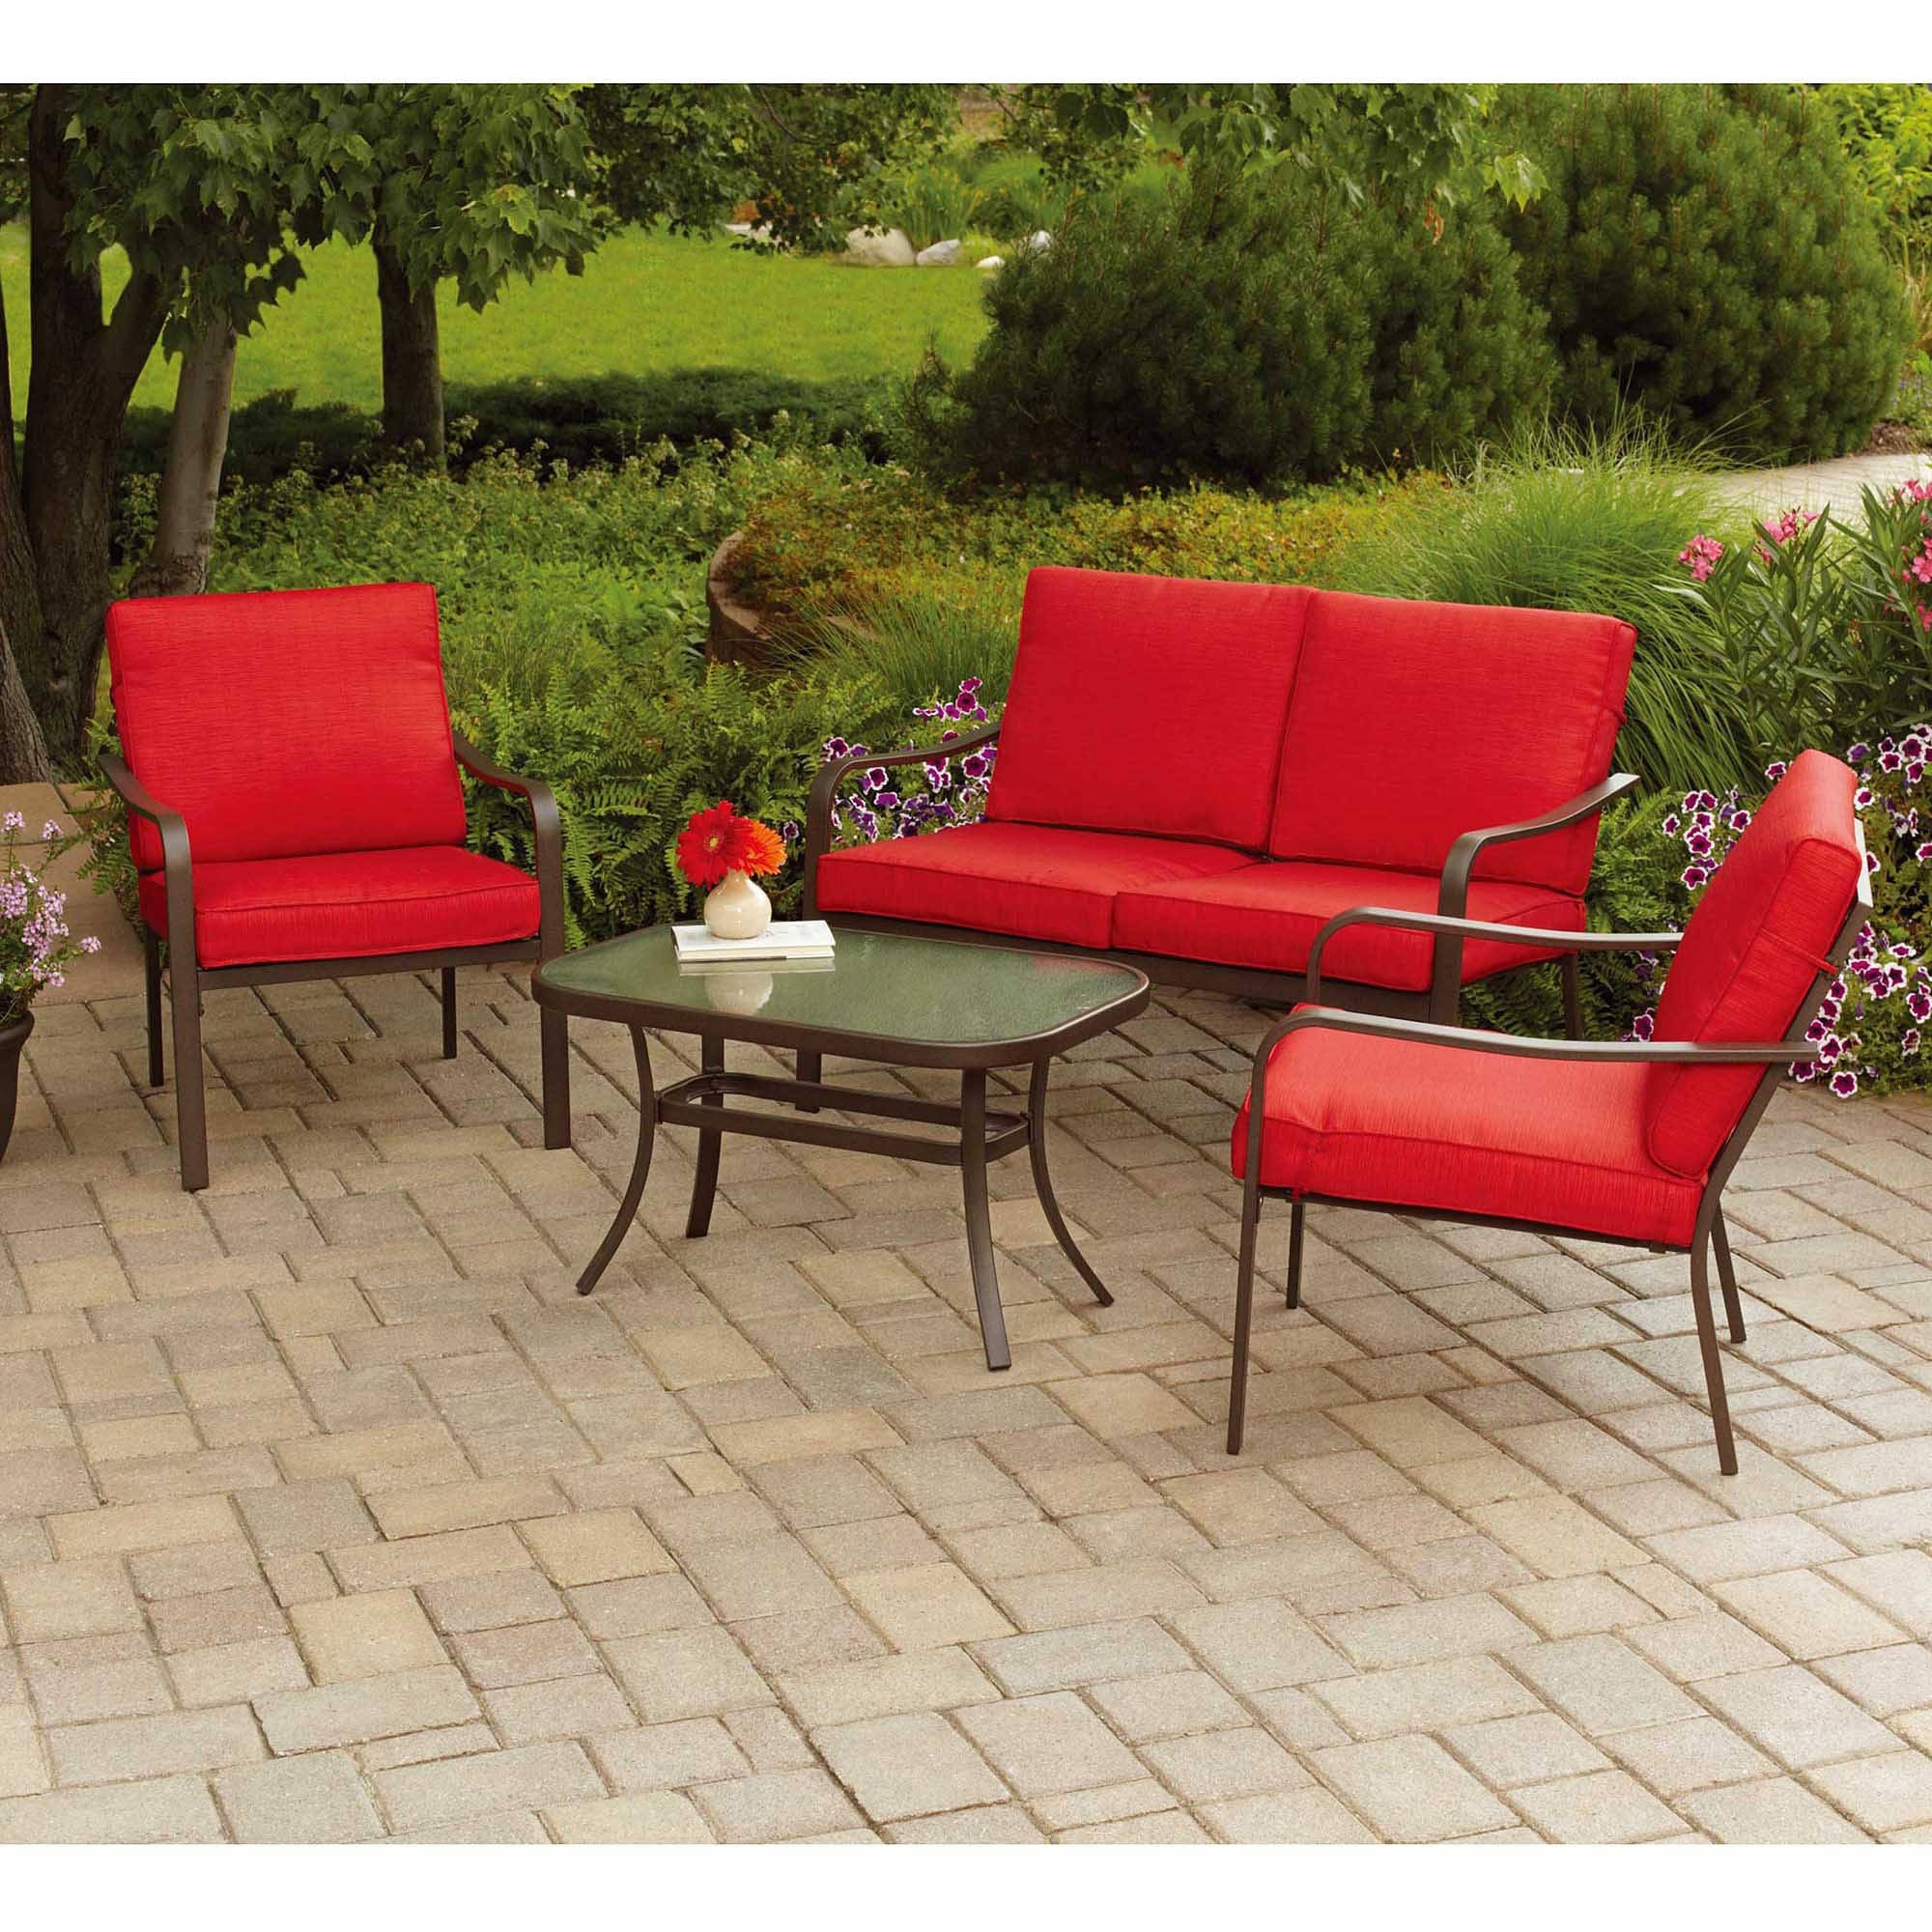 Well Liked Mainstays Stanton Cushioned 4 Piece Patio Conversation Set, Seats 4 Inside Patio Conversation Sets At Sears (View 11 of 20)